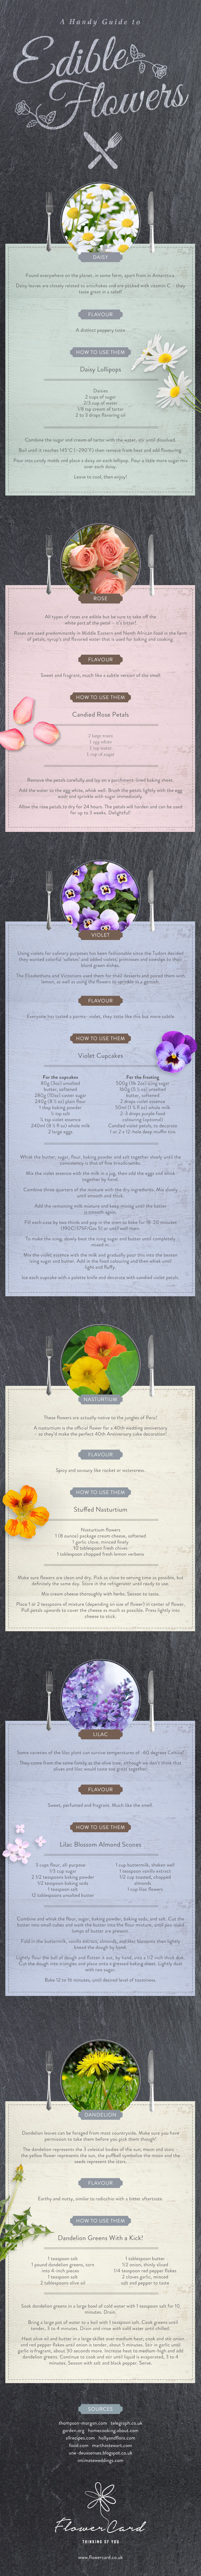 Learn How To Use Edible Flowers In Your Cooking Infographic